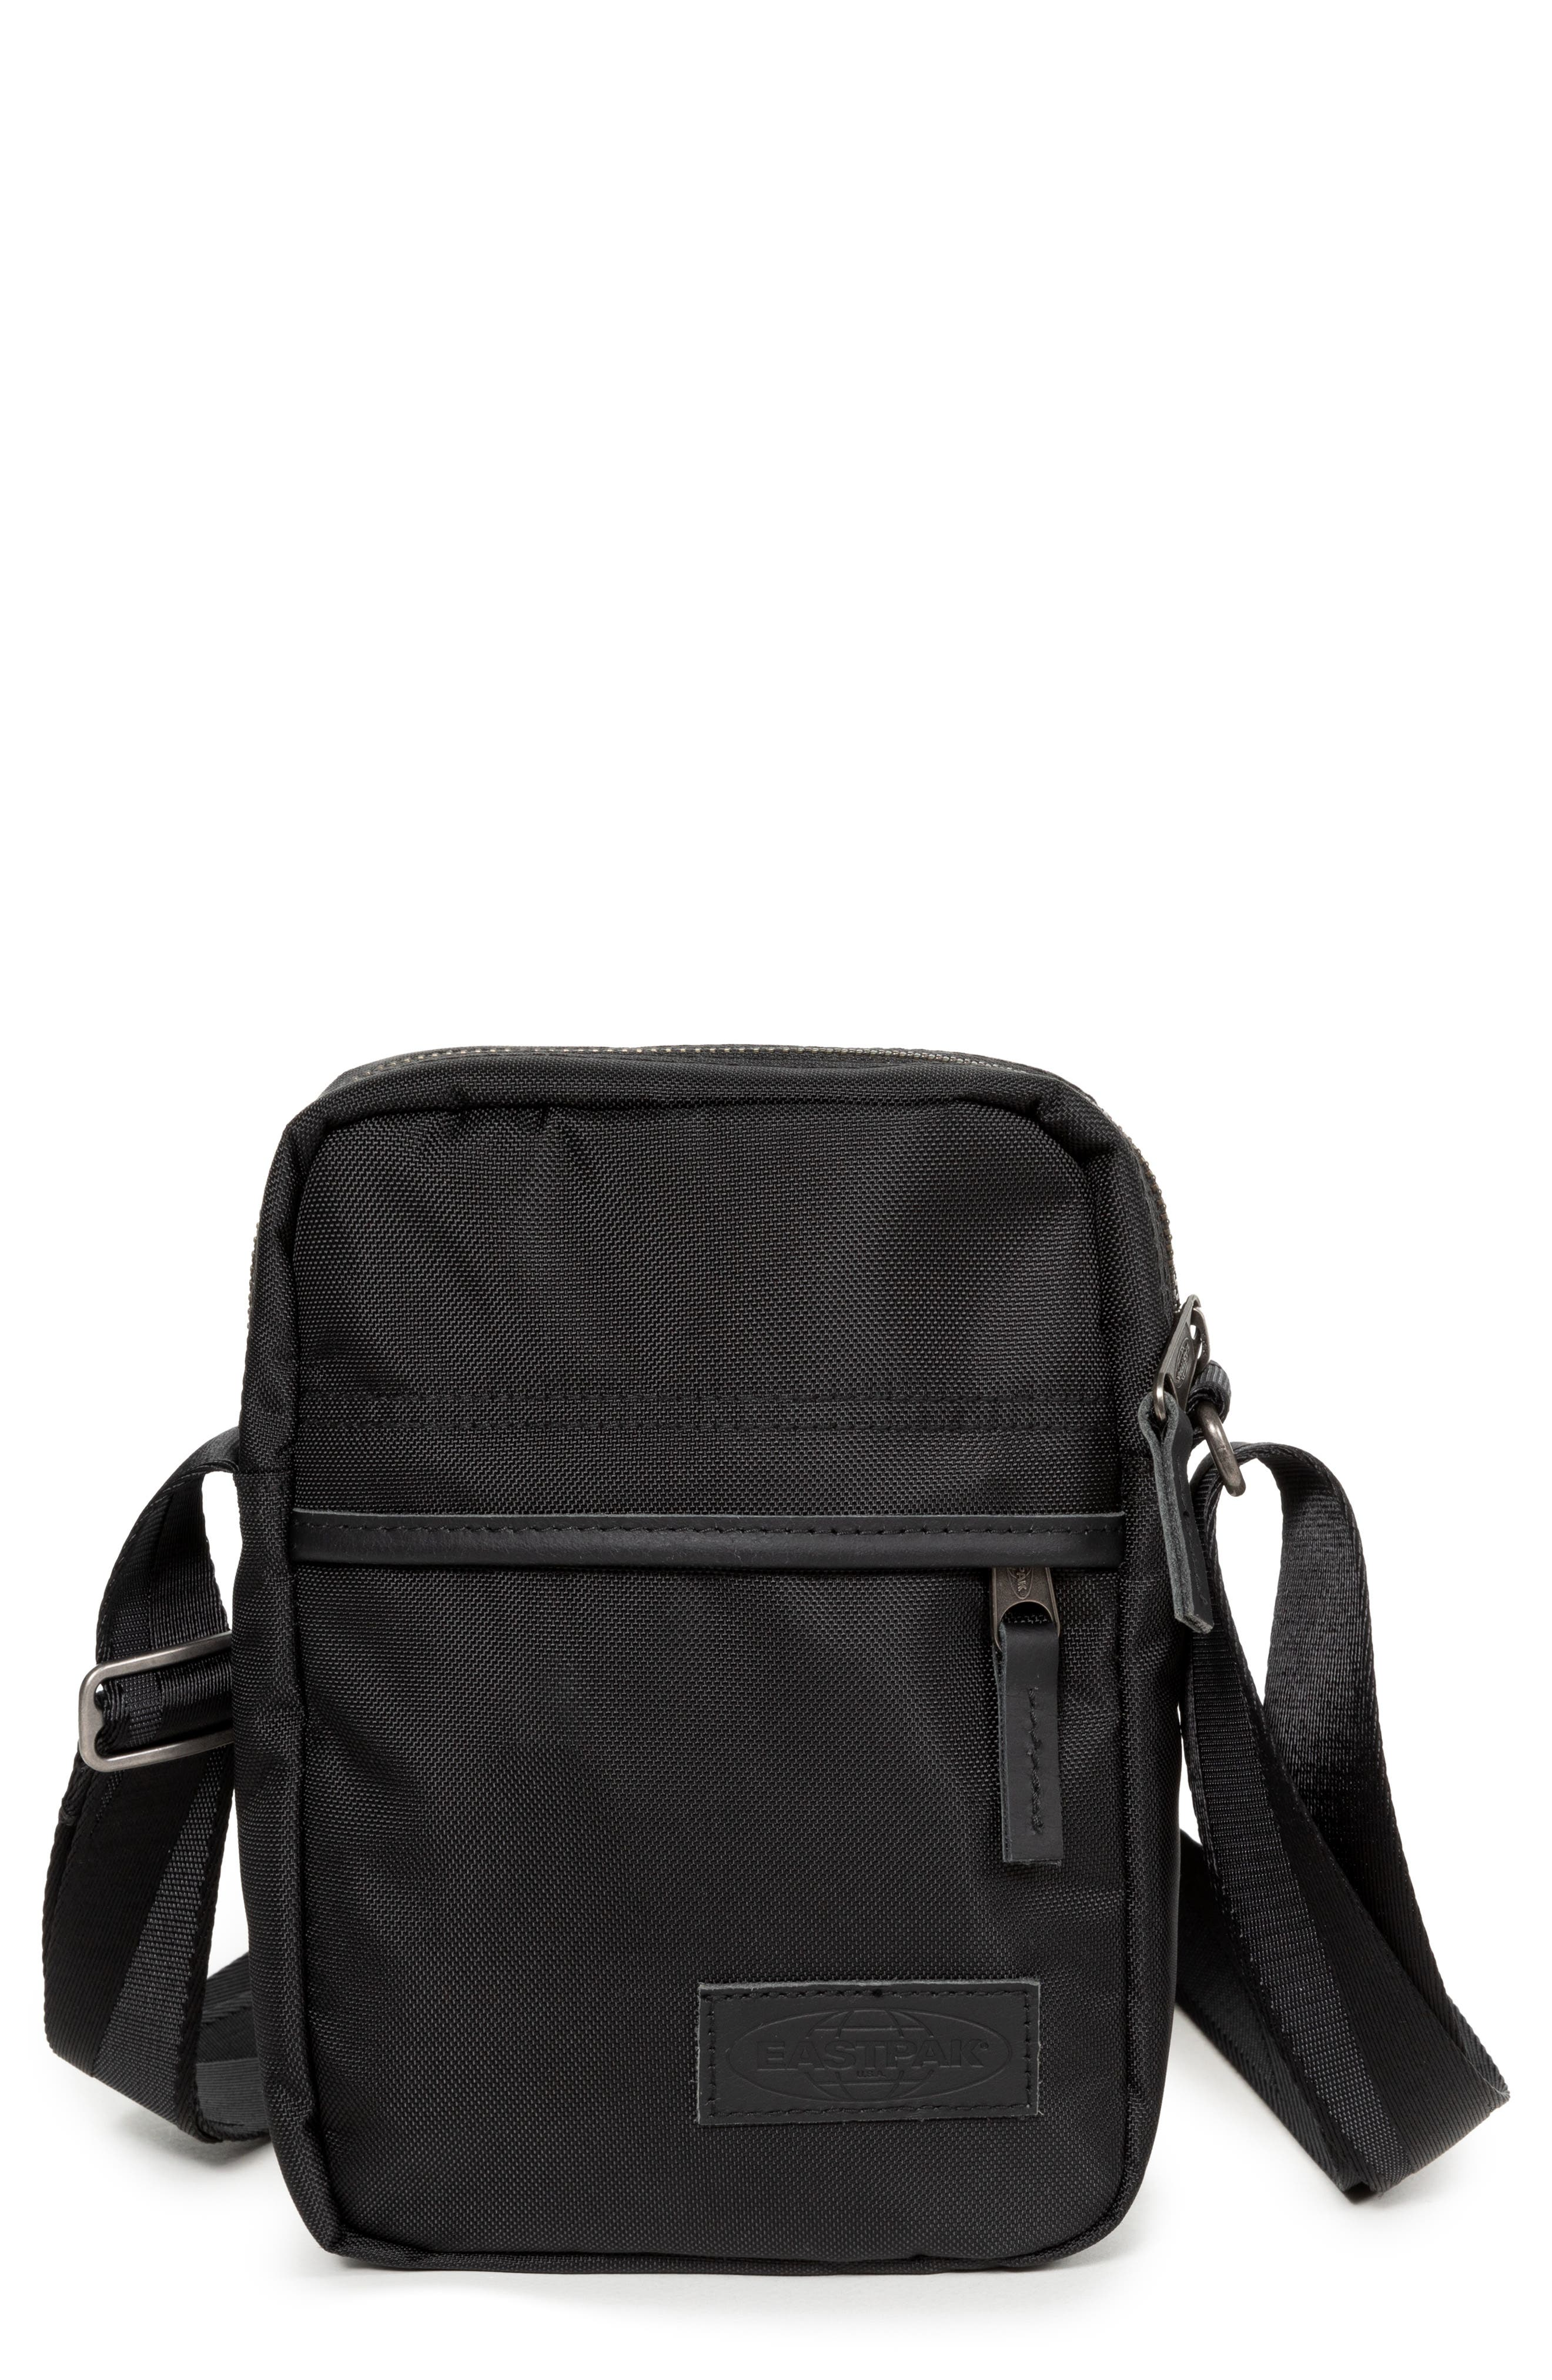 EASTPAK,                             The One Constructed Nylon Crossbody Bag,                             Main thumbnail 1, color,                             001